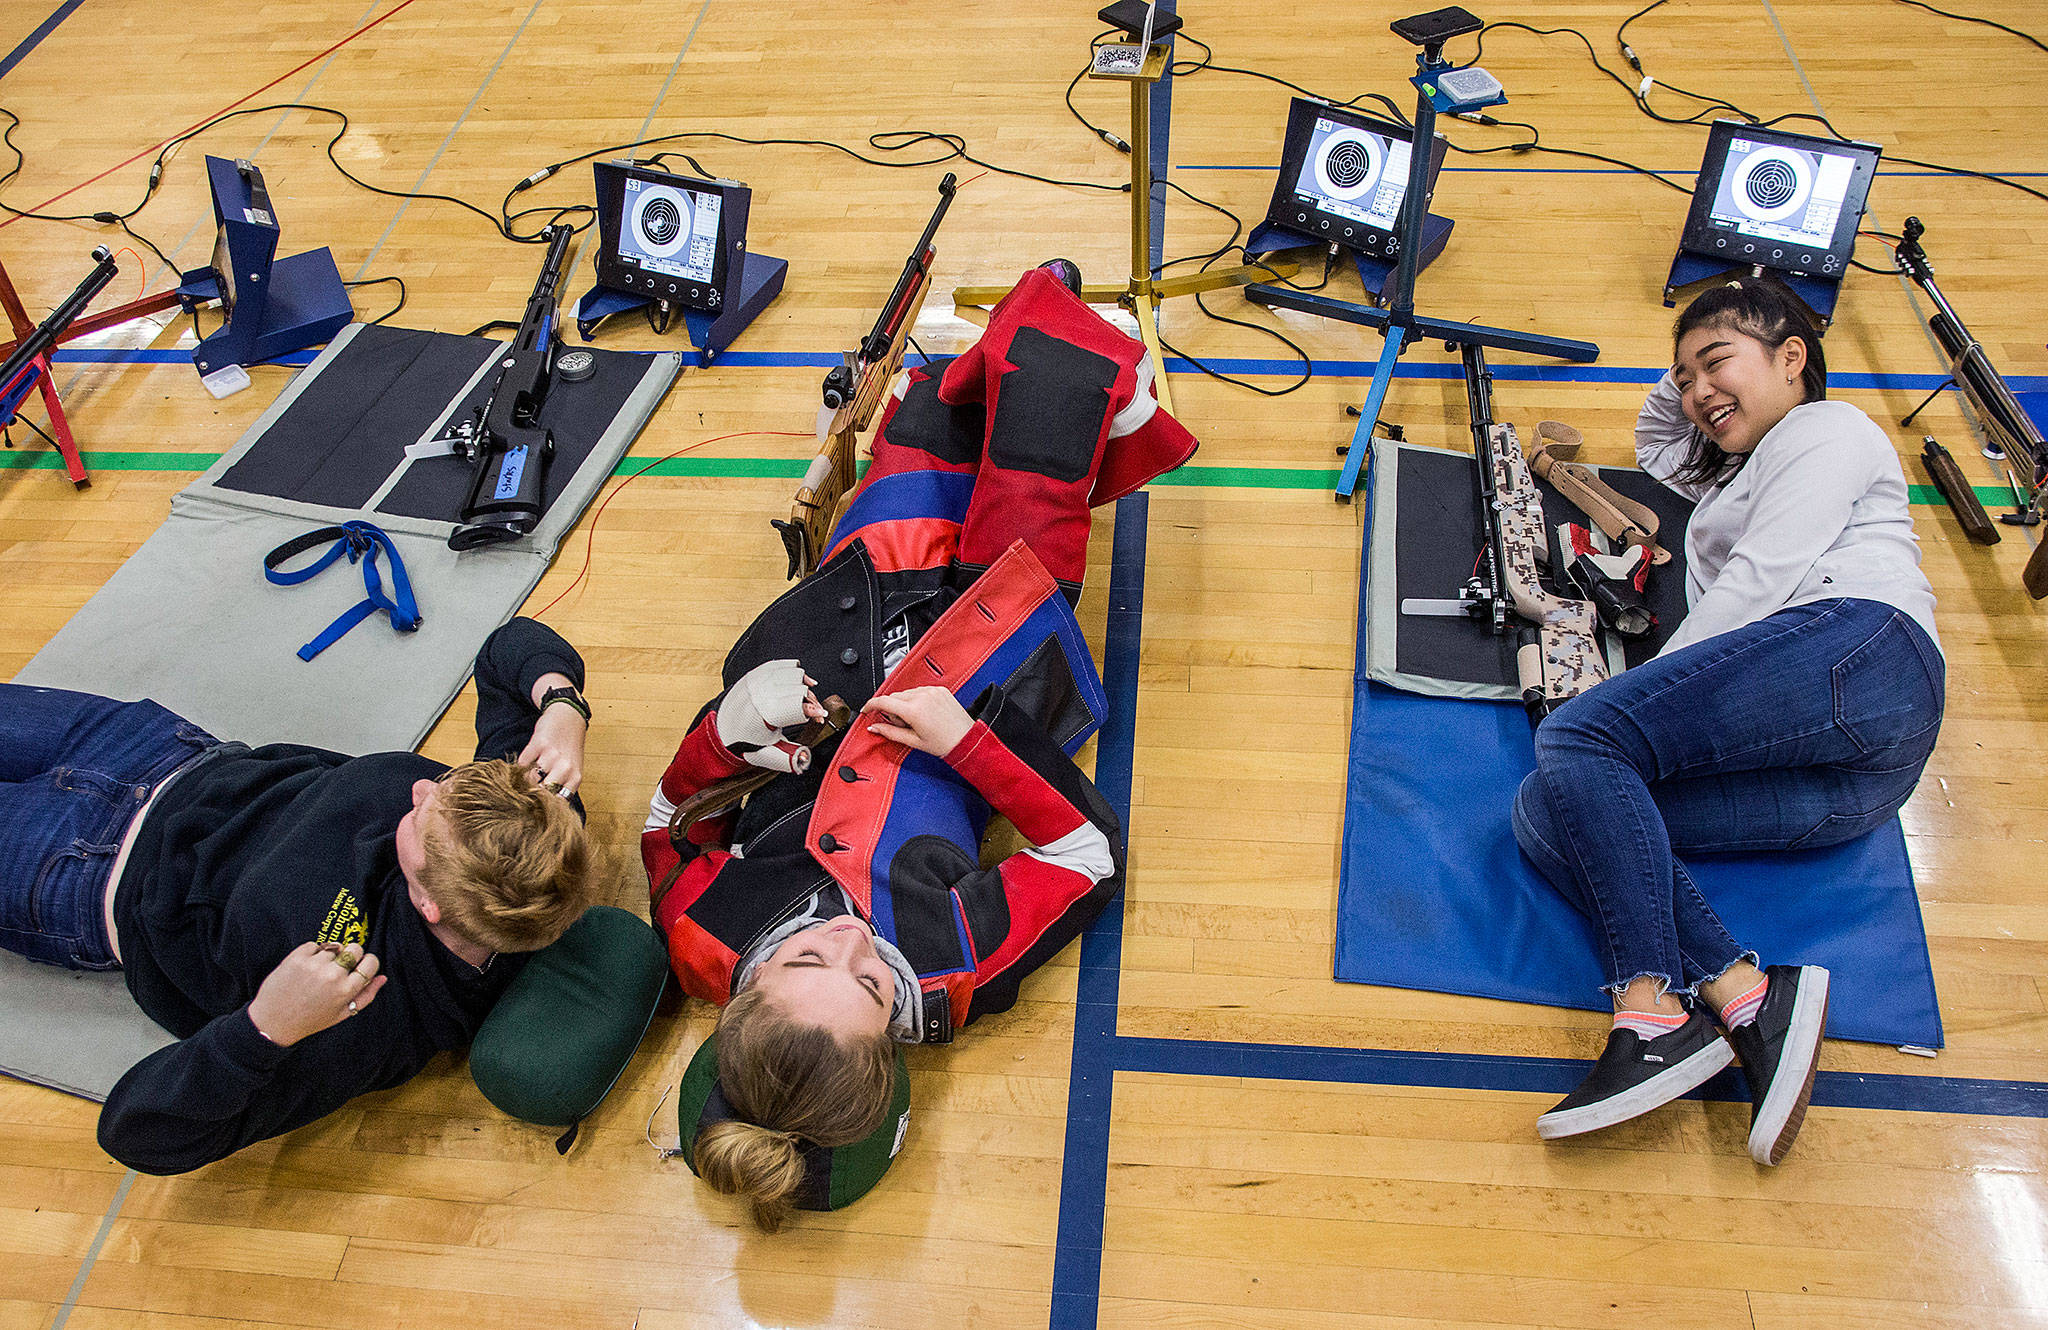 Kayla Dunham (from left), Jesse Brown and Reina Kim take a break during CMP Air Rifle Marksmanship Camp at Snohomish High School on Thursday. (Olivia Vanni / The Herald)